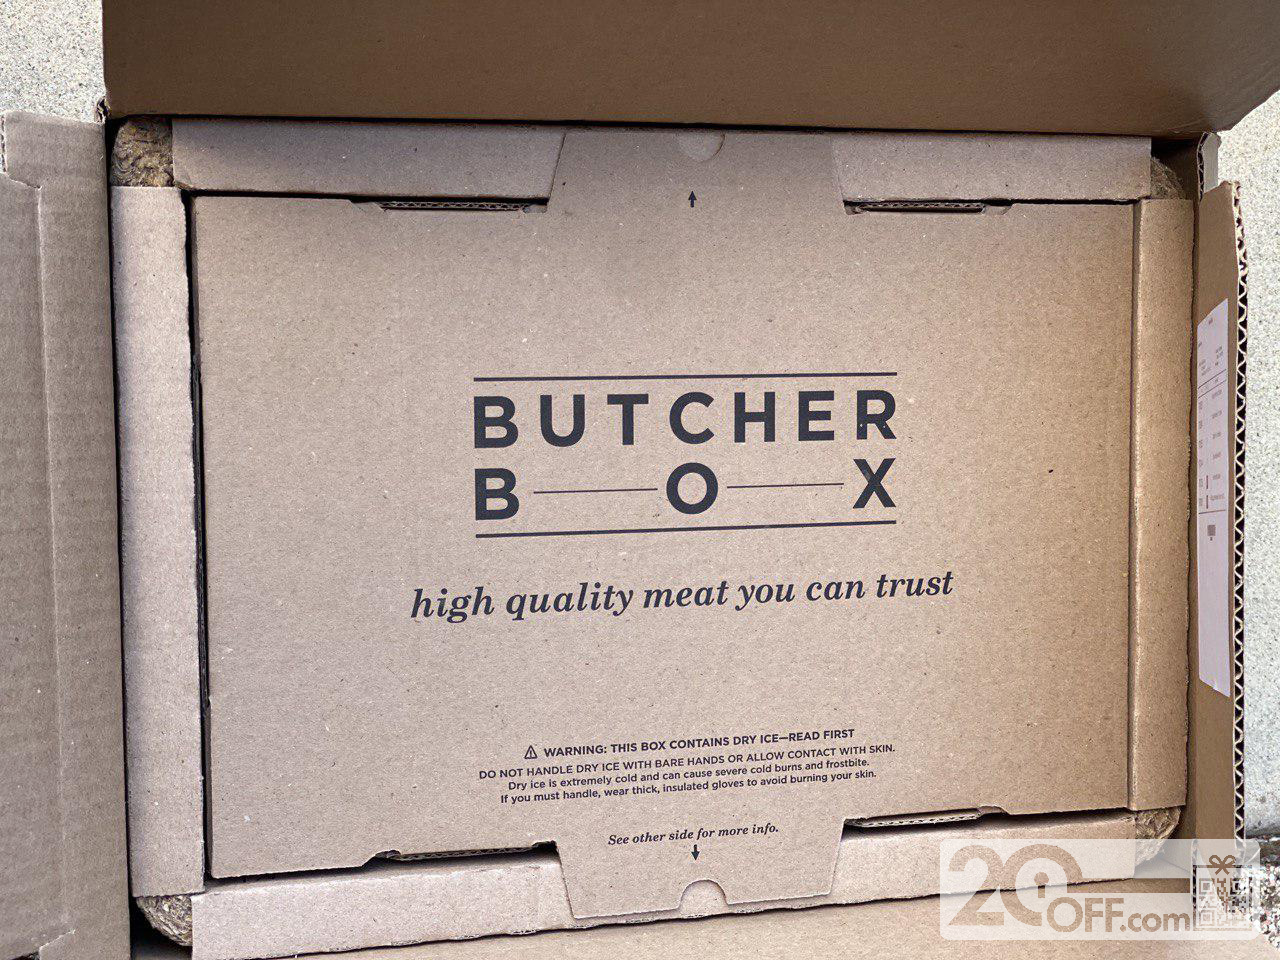 Butcher Box Coupon